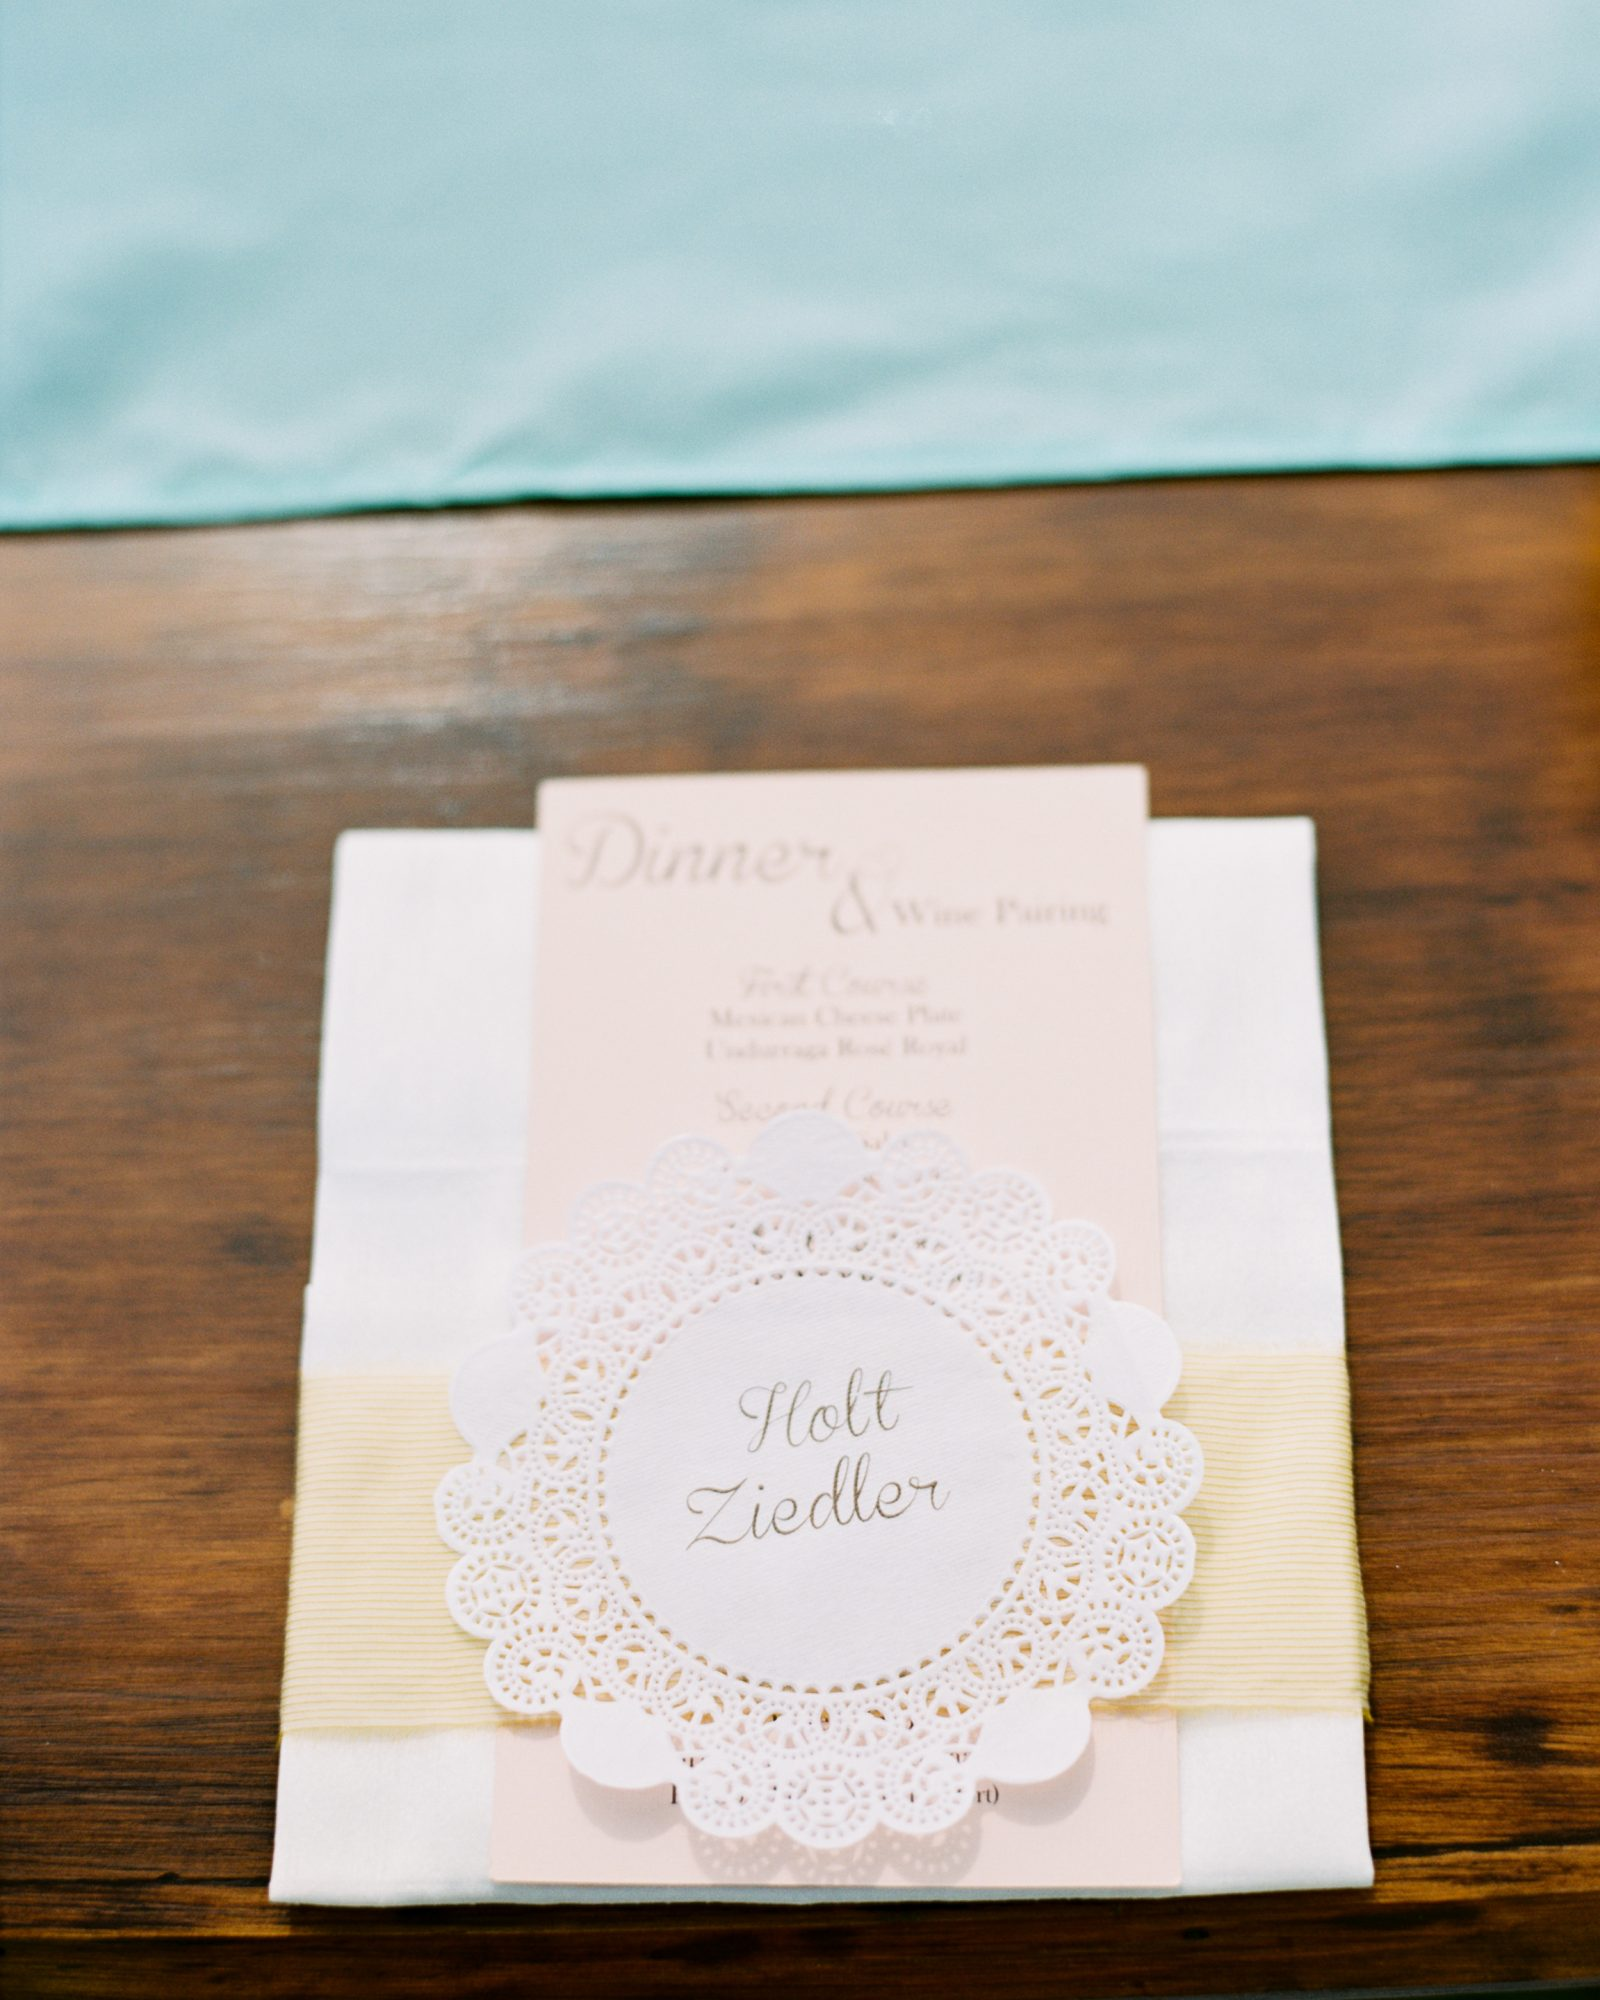 molly-nate-wedding-placesetting-013-s111479-0814.jpg